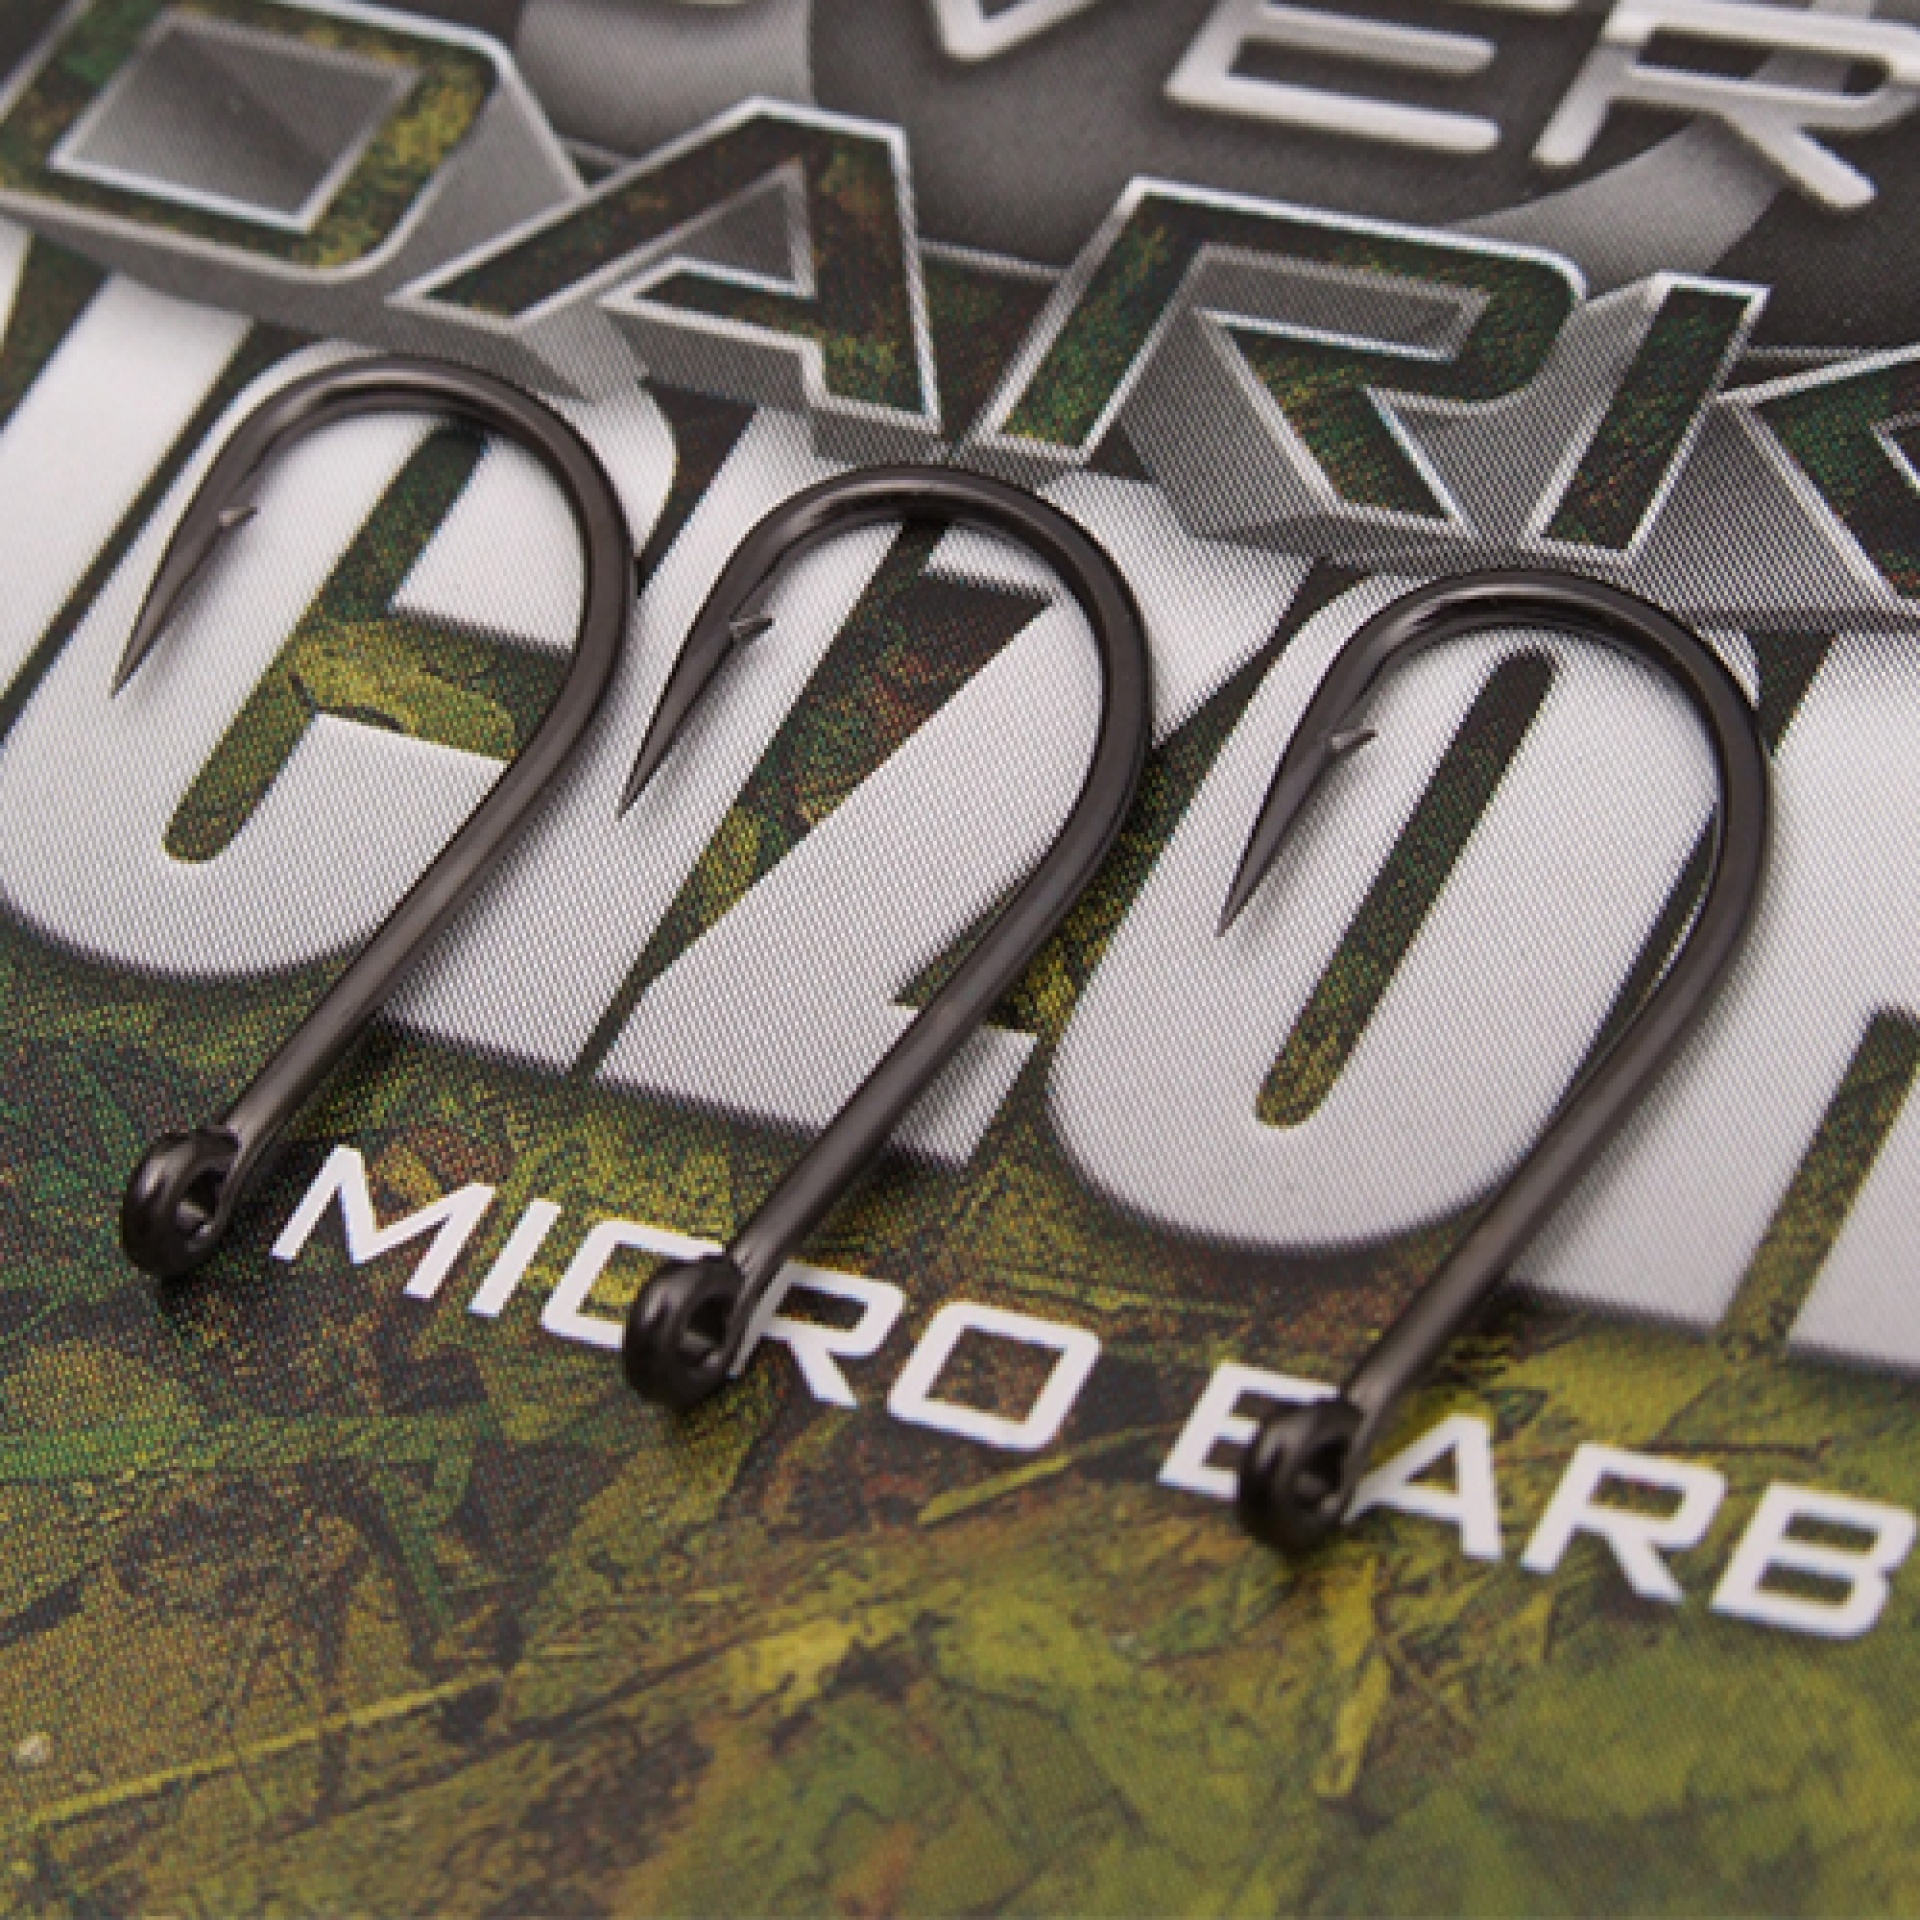 Just Carp specialist Eyed Barbless Hooks size 6 pack of 10